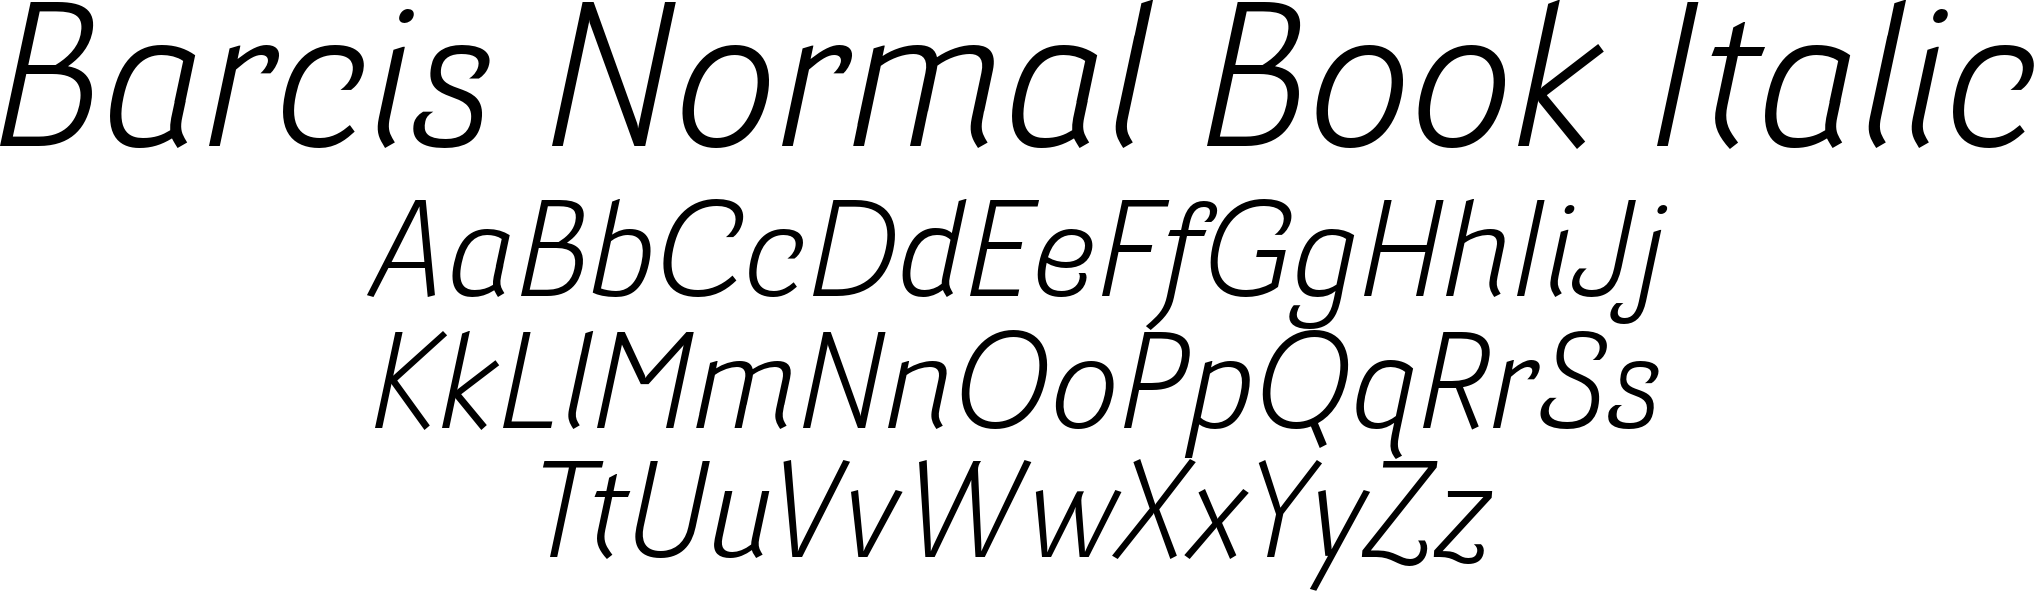 Barcis Normal Book Italic